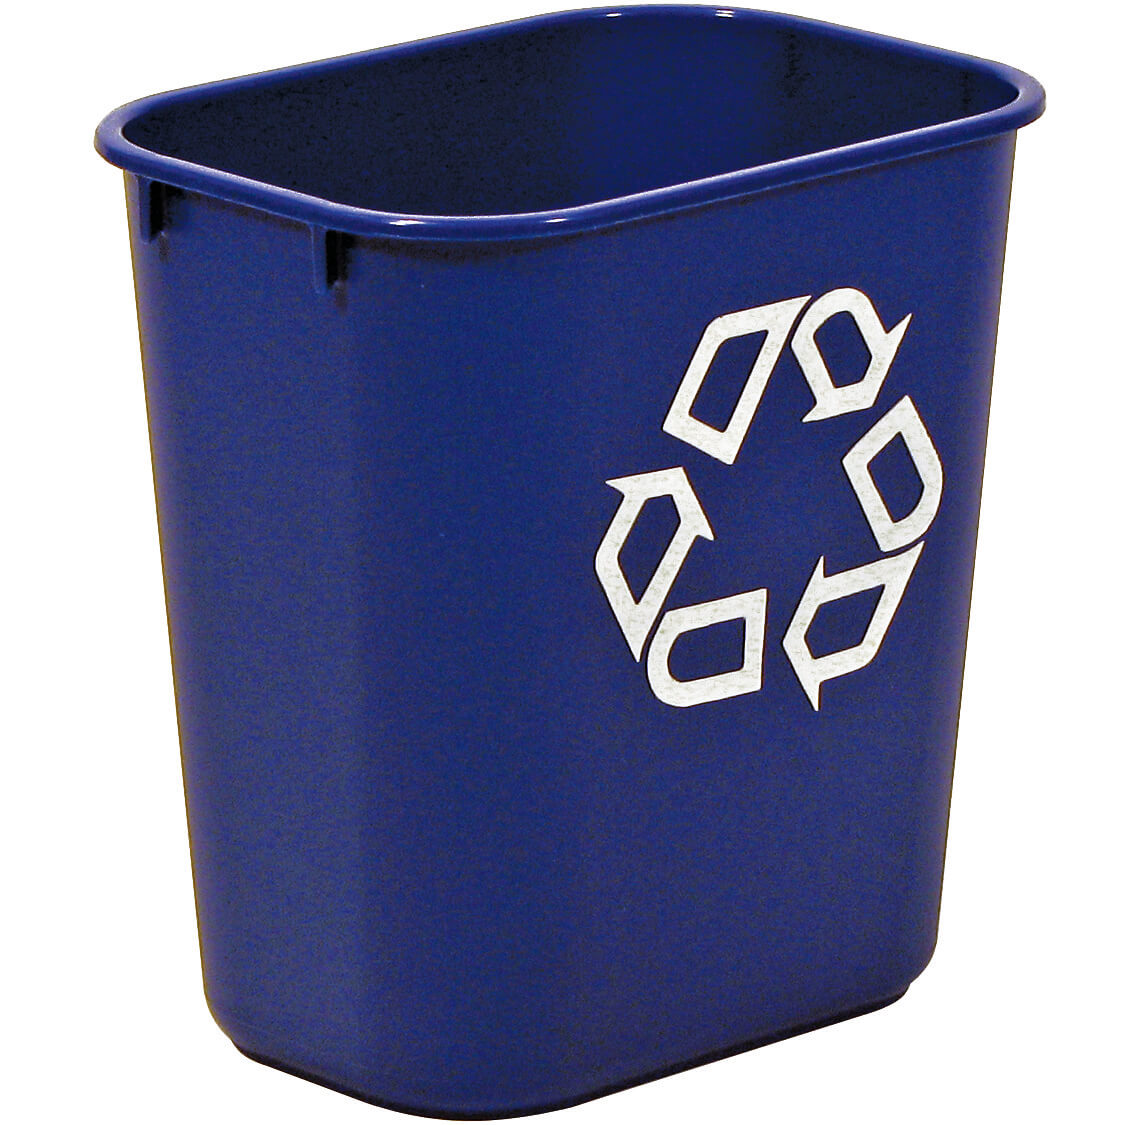 small 13 quart office recycling bin for deskside recycling